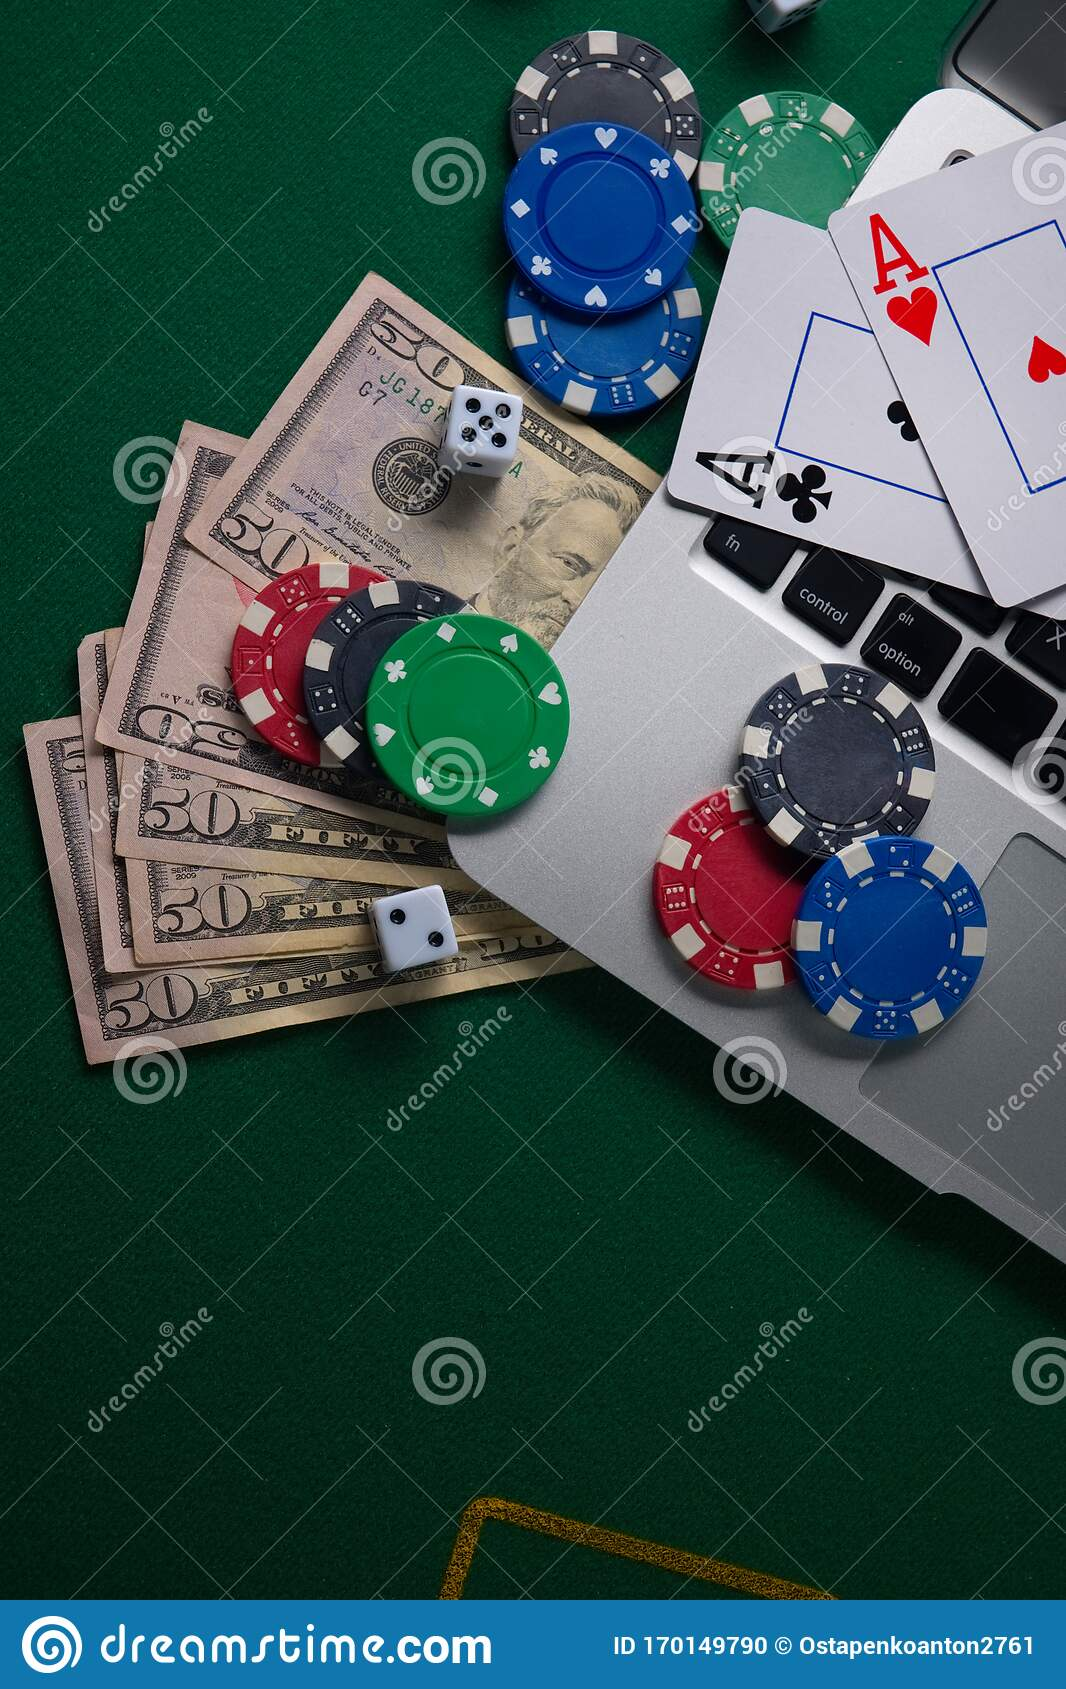 Business services gambling casino deluxe download